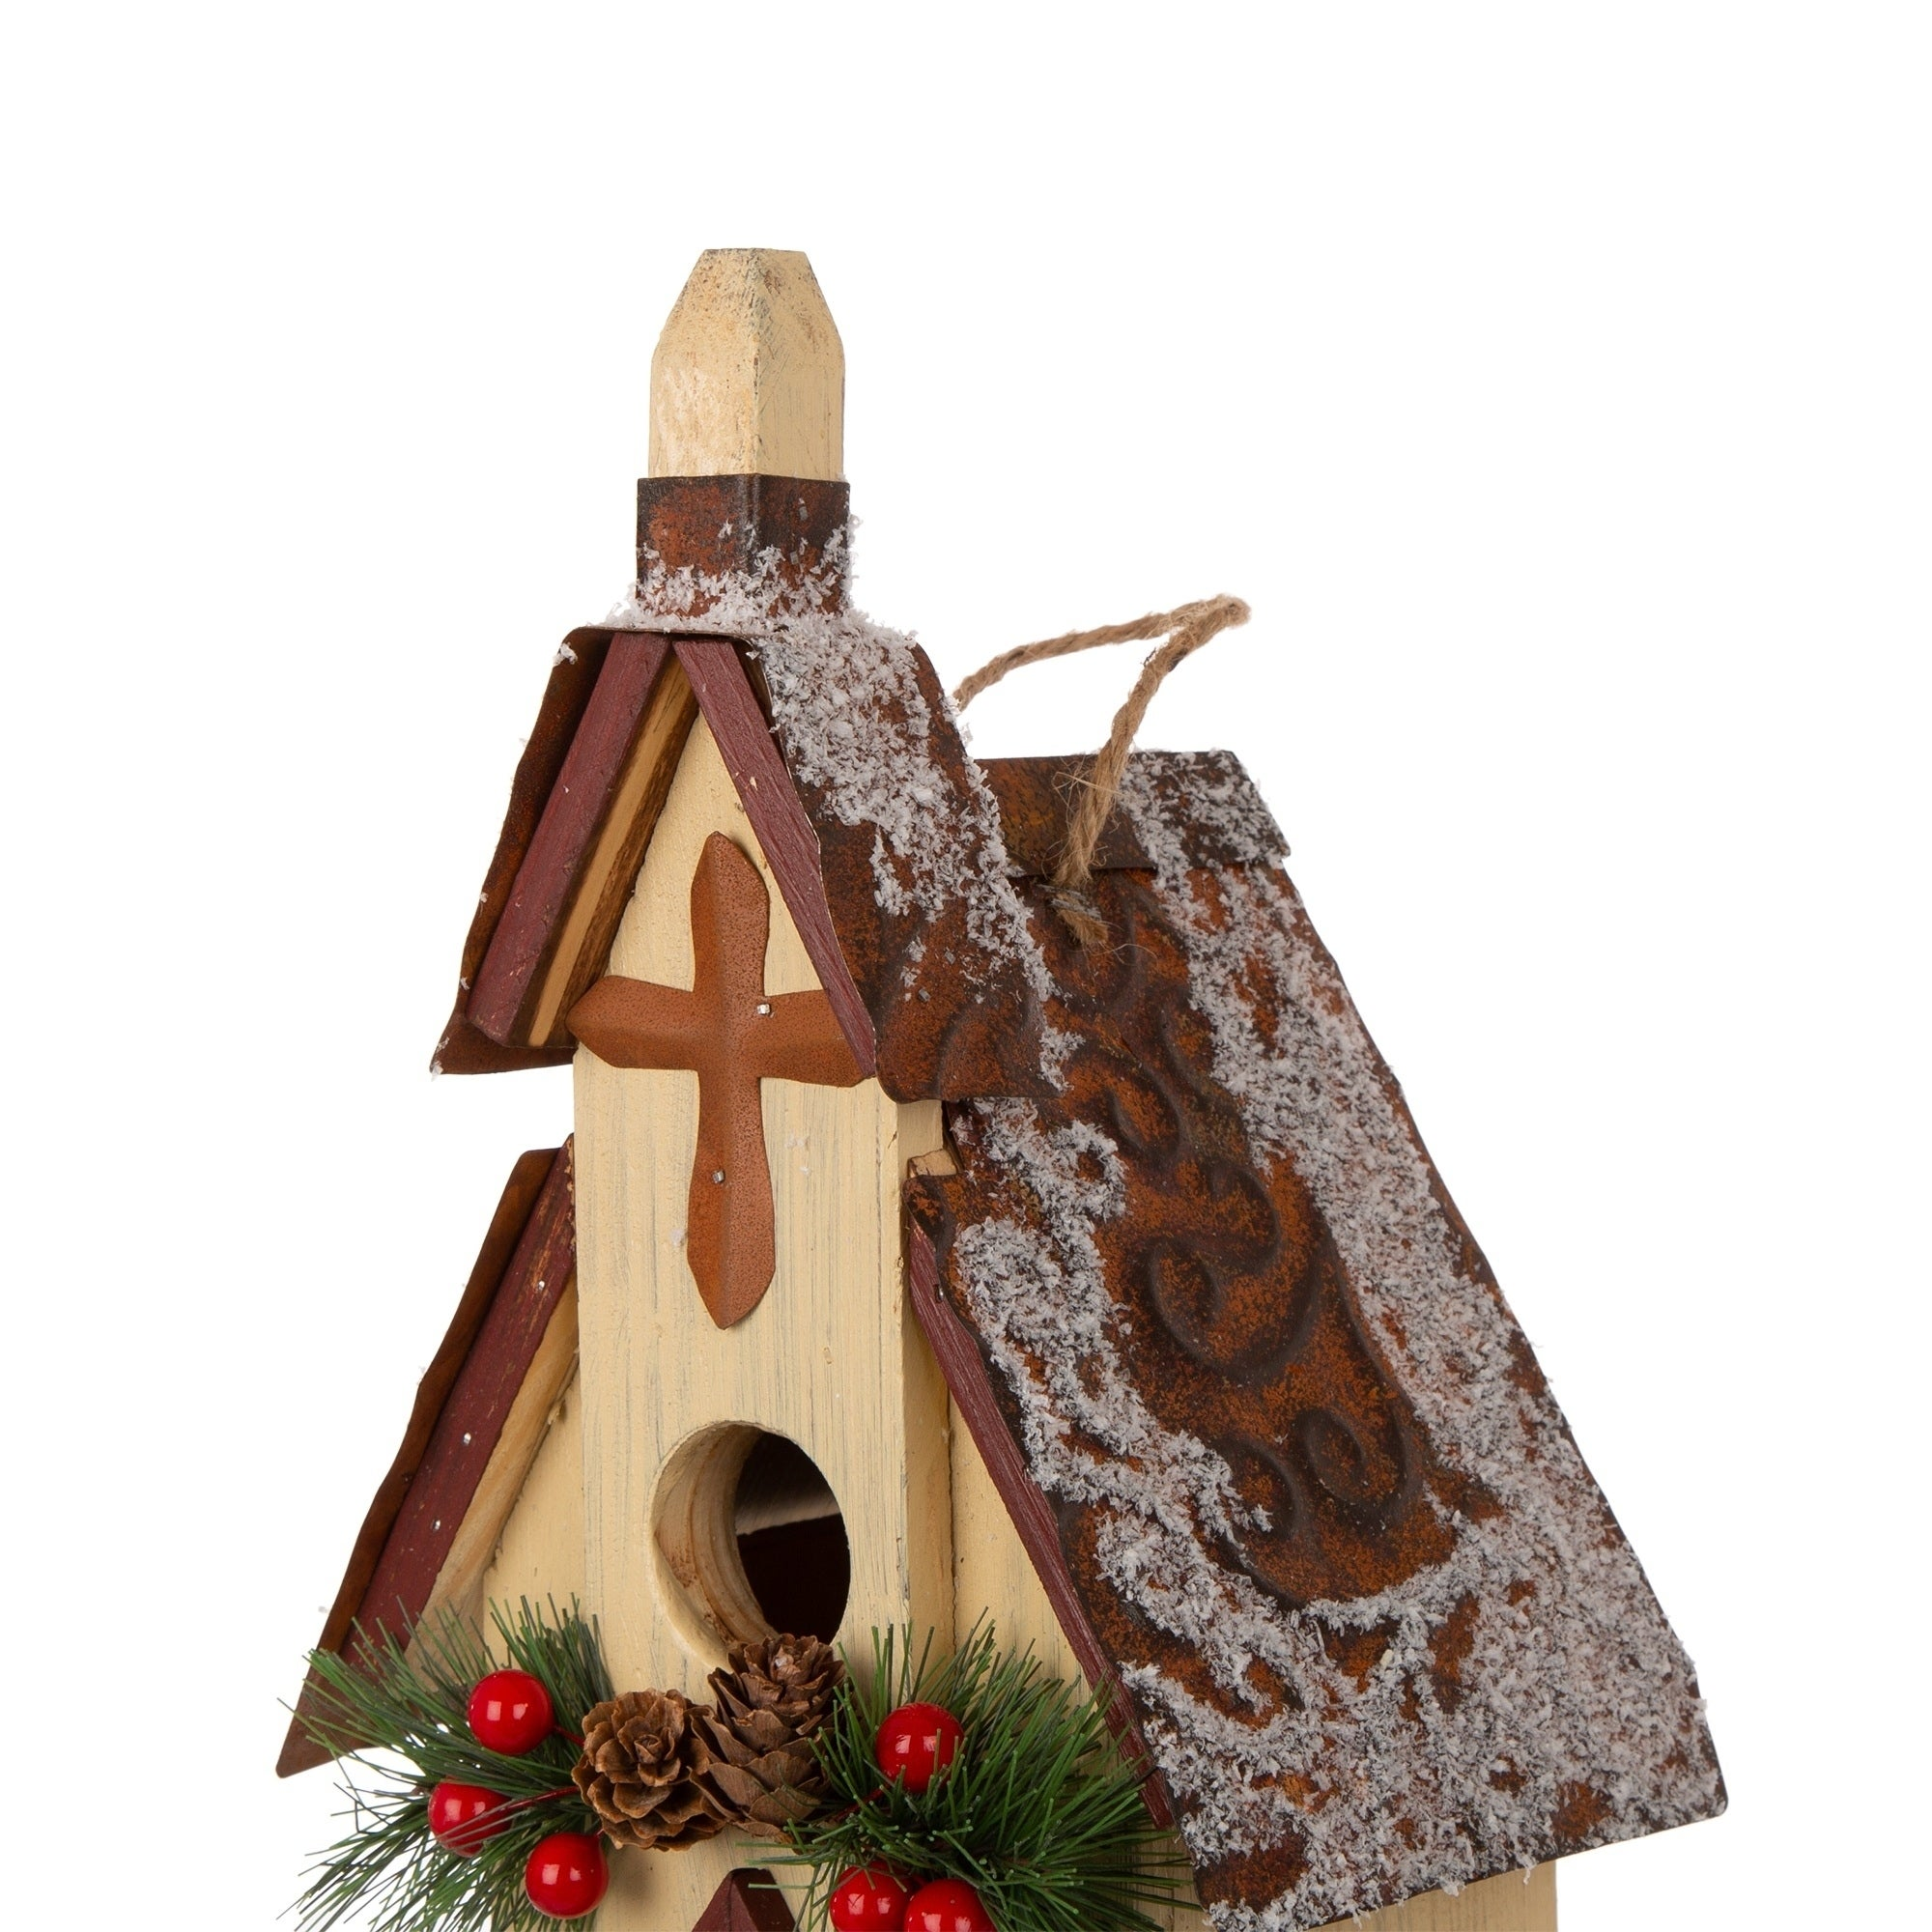 Glitzhome Christmas Wooden Church Birdhouse Overstock 28780626 Large